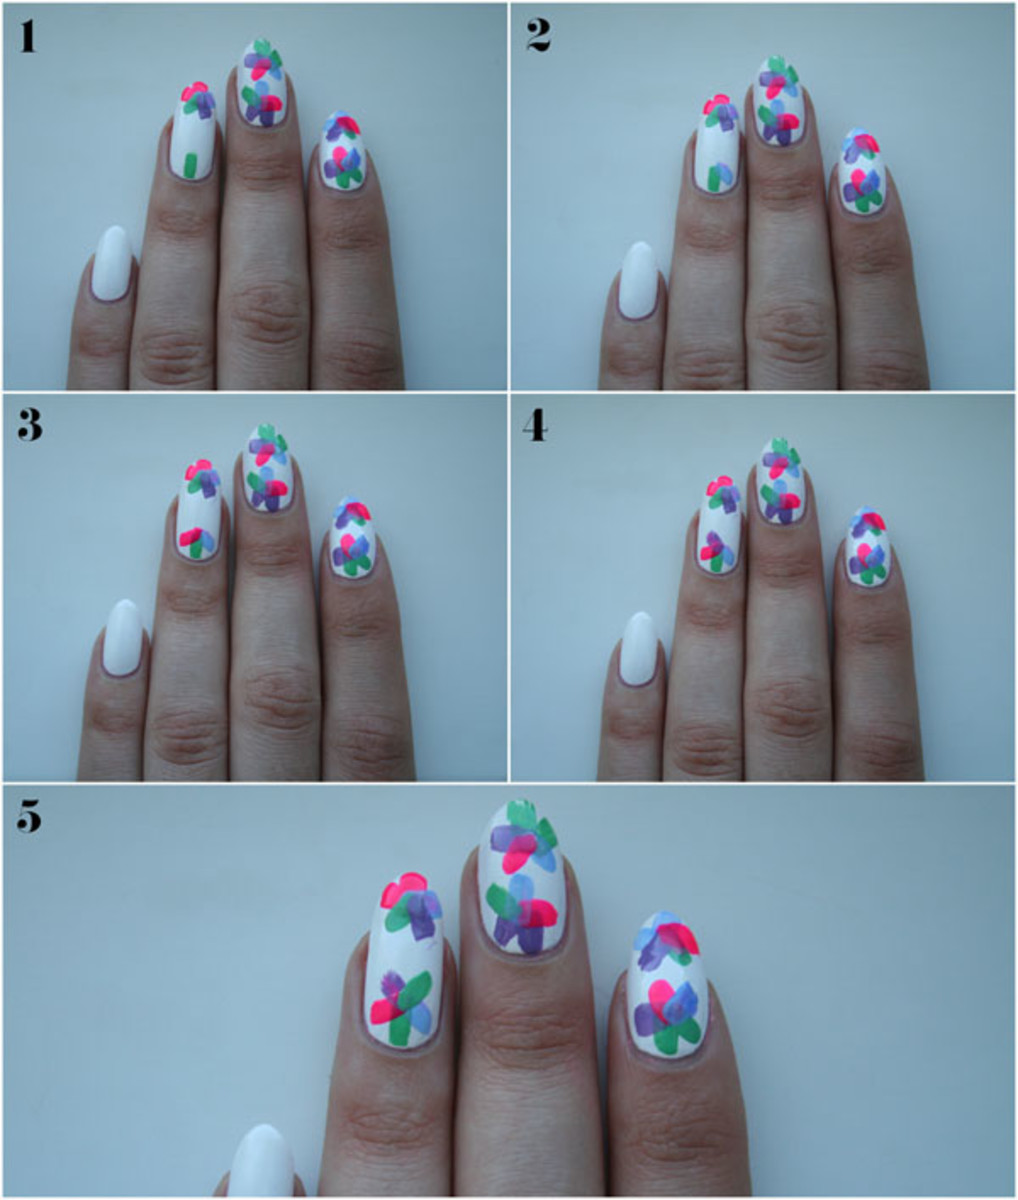 Floral nail art tutorial - step 2